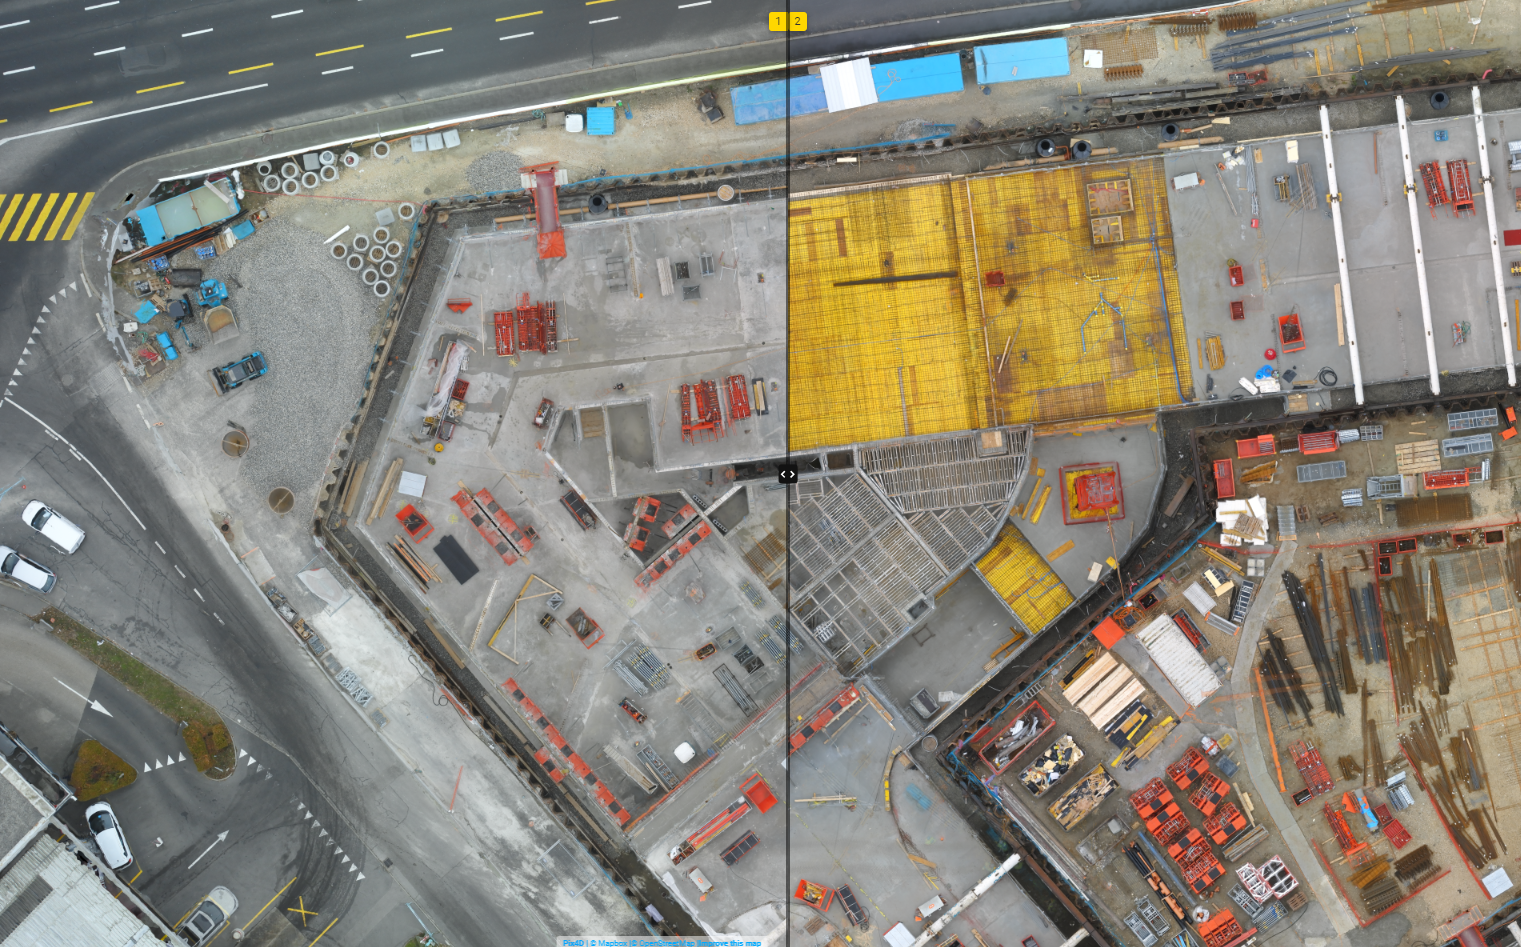 2D comparison of the construction site